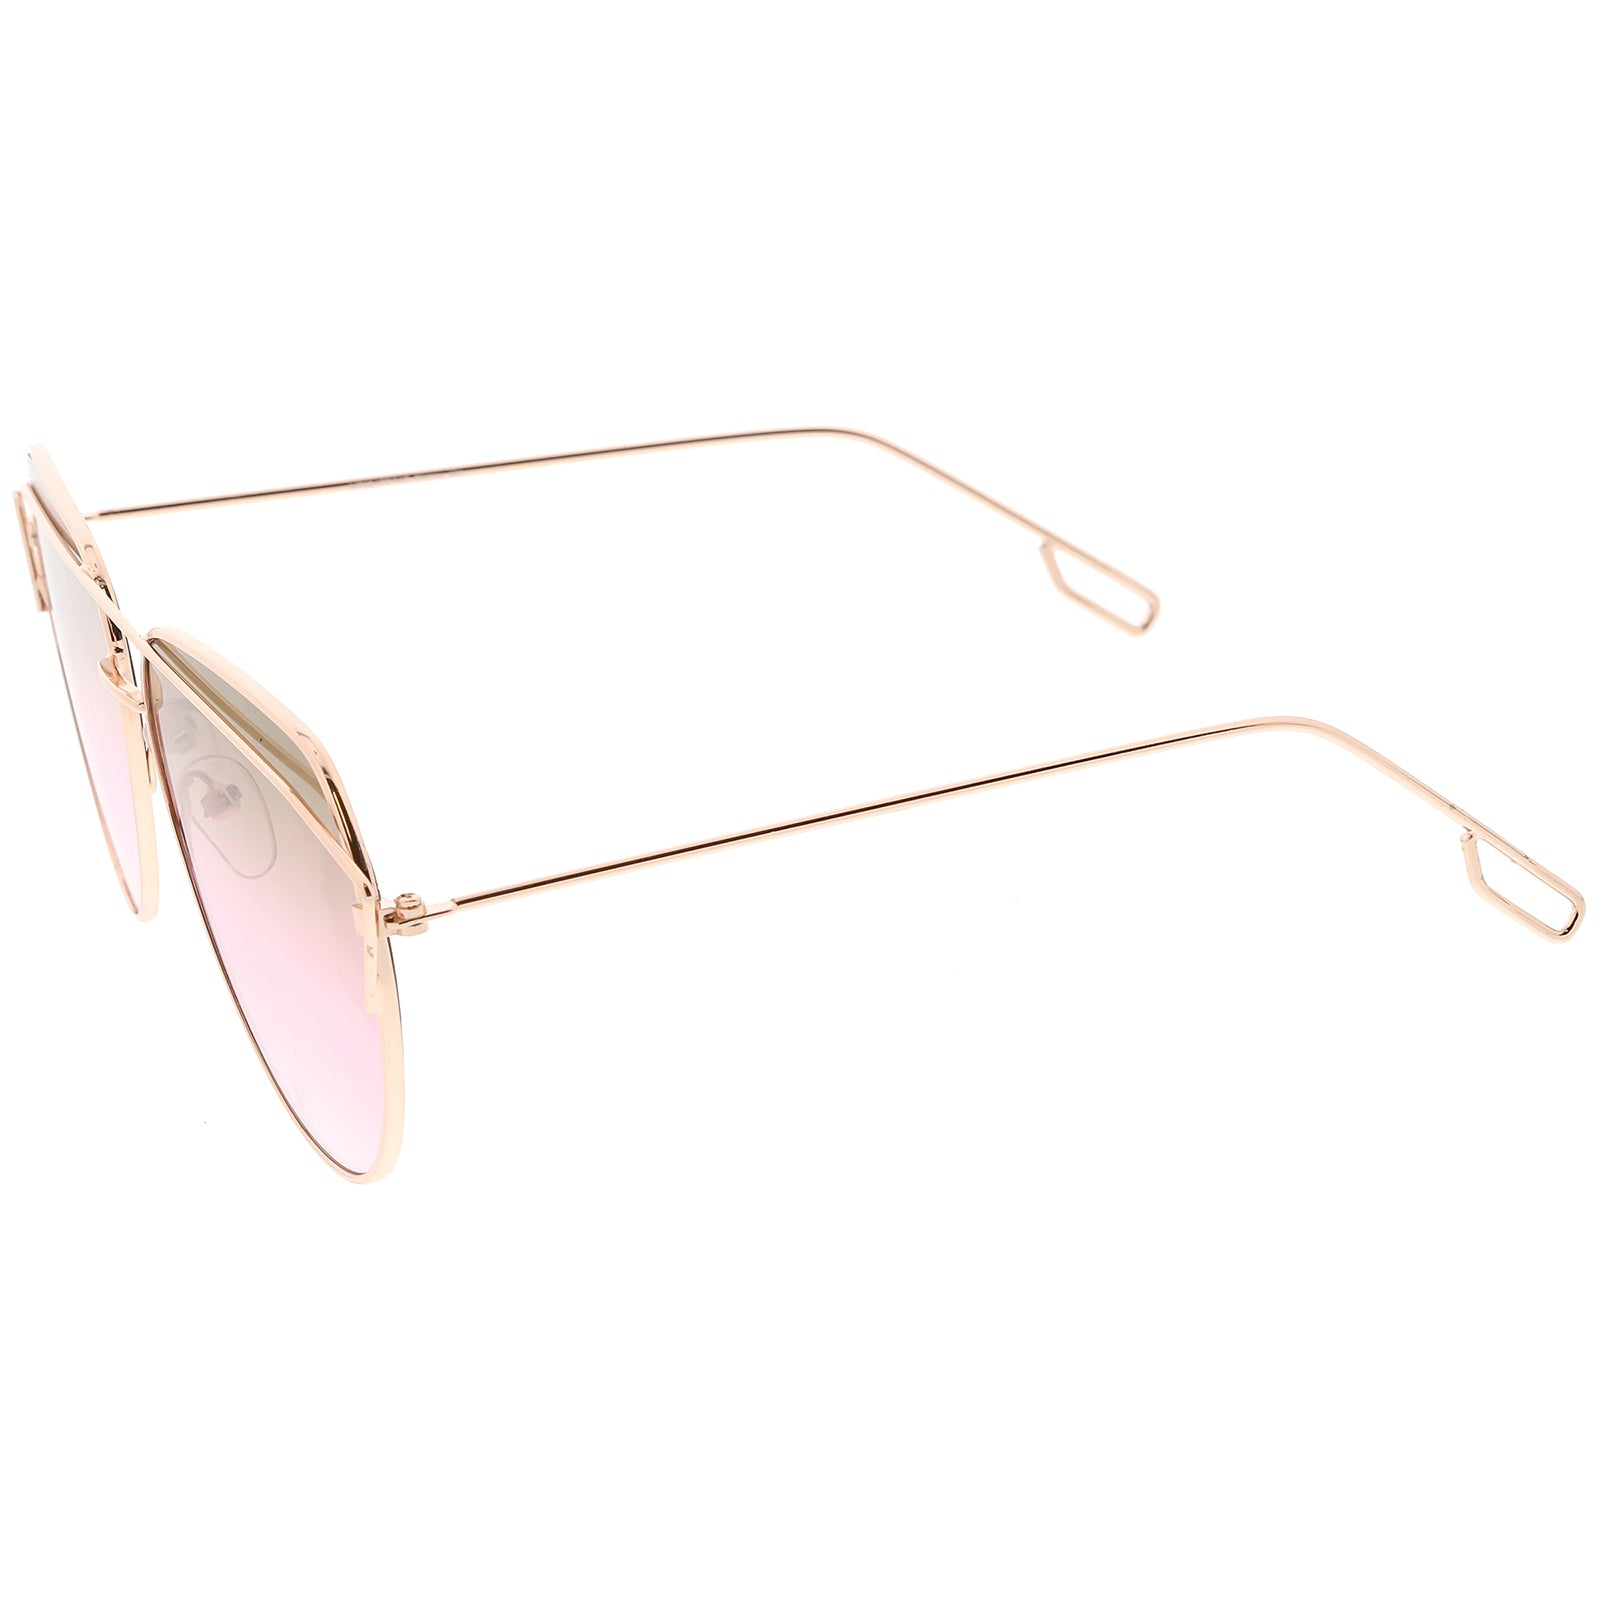 54a58ce5af Modern Aviator Sunglasses Metal Crossbar Slim Arms Color Gradient ...